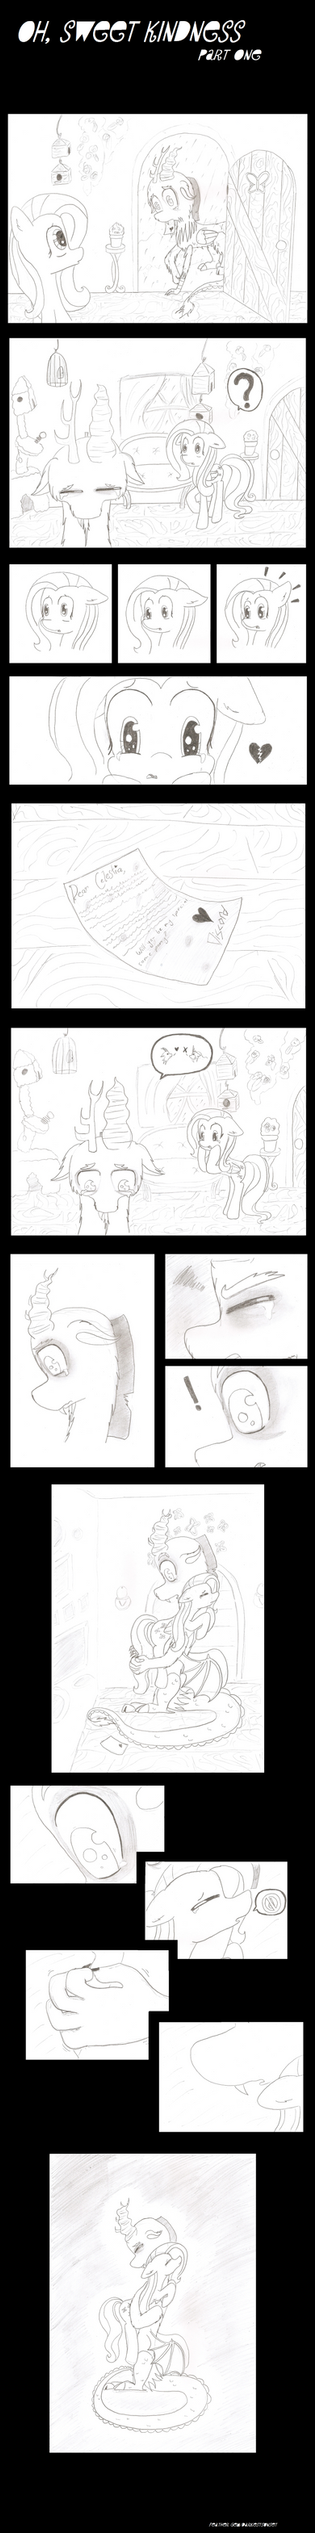 Oh, Sweet Kindness - Part One by DarkestSunset